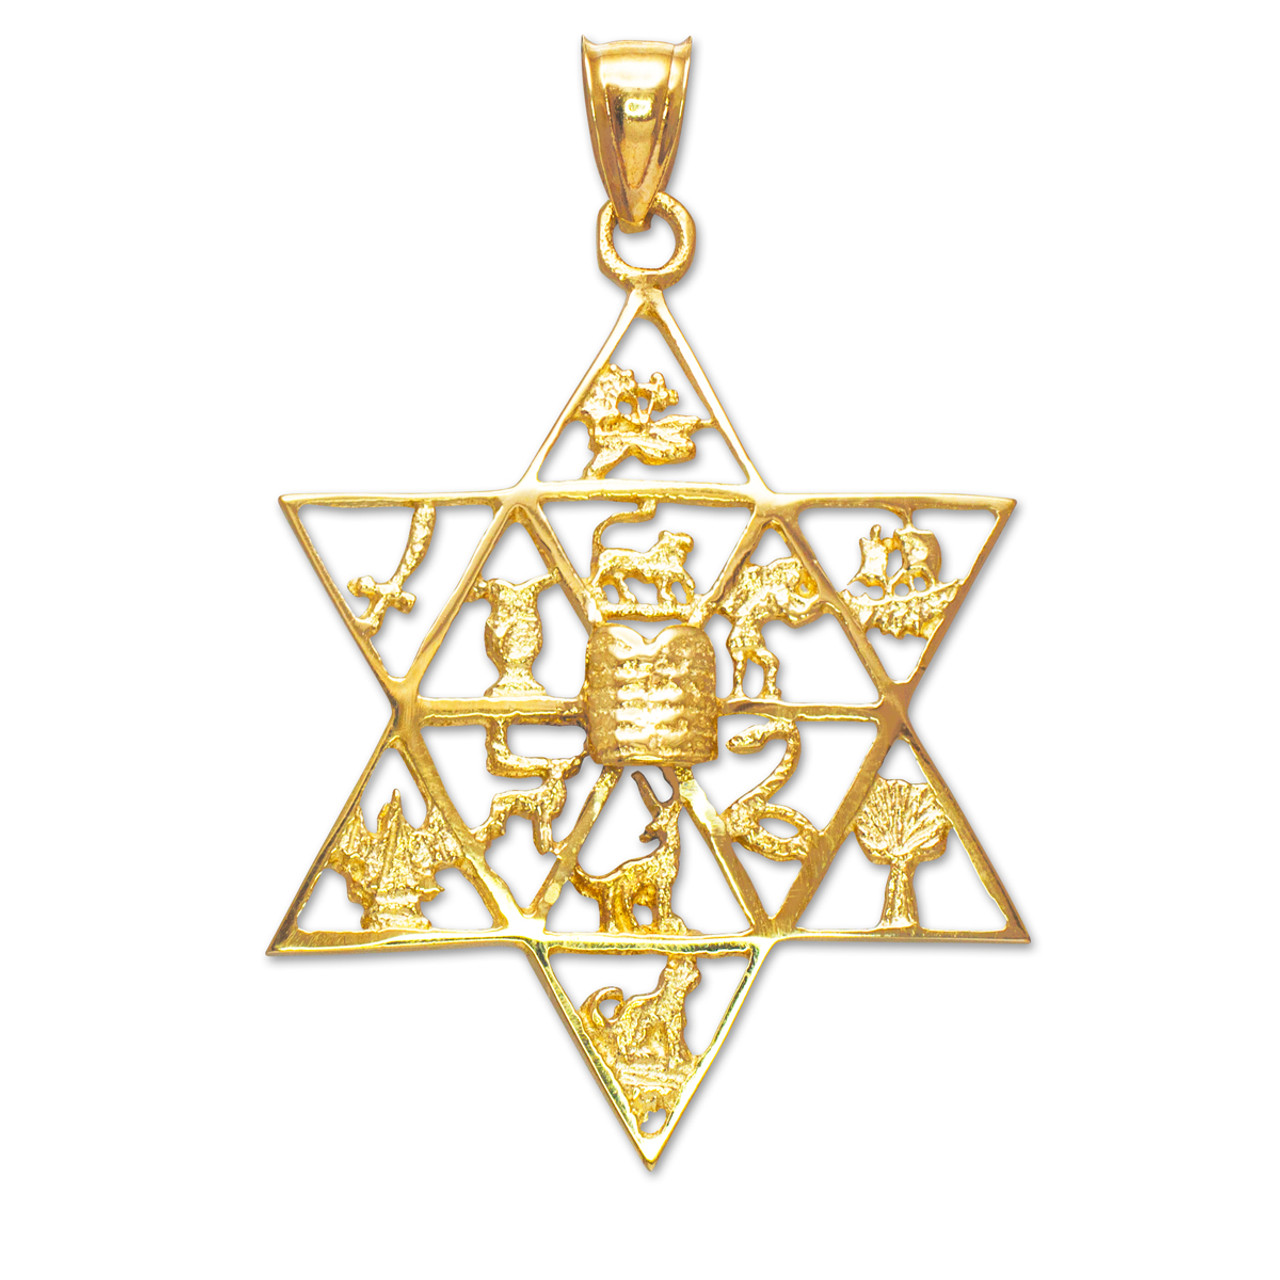 Gold star of david with twelve tribes of israel pendant aloadofball Image collections